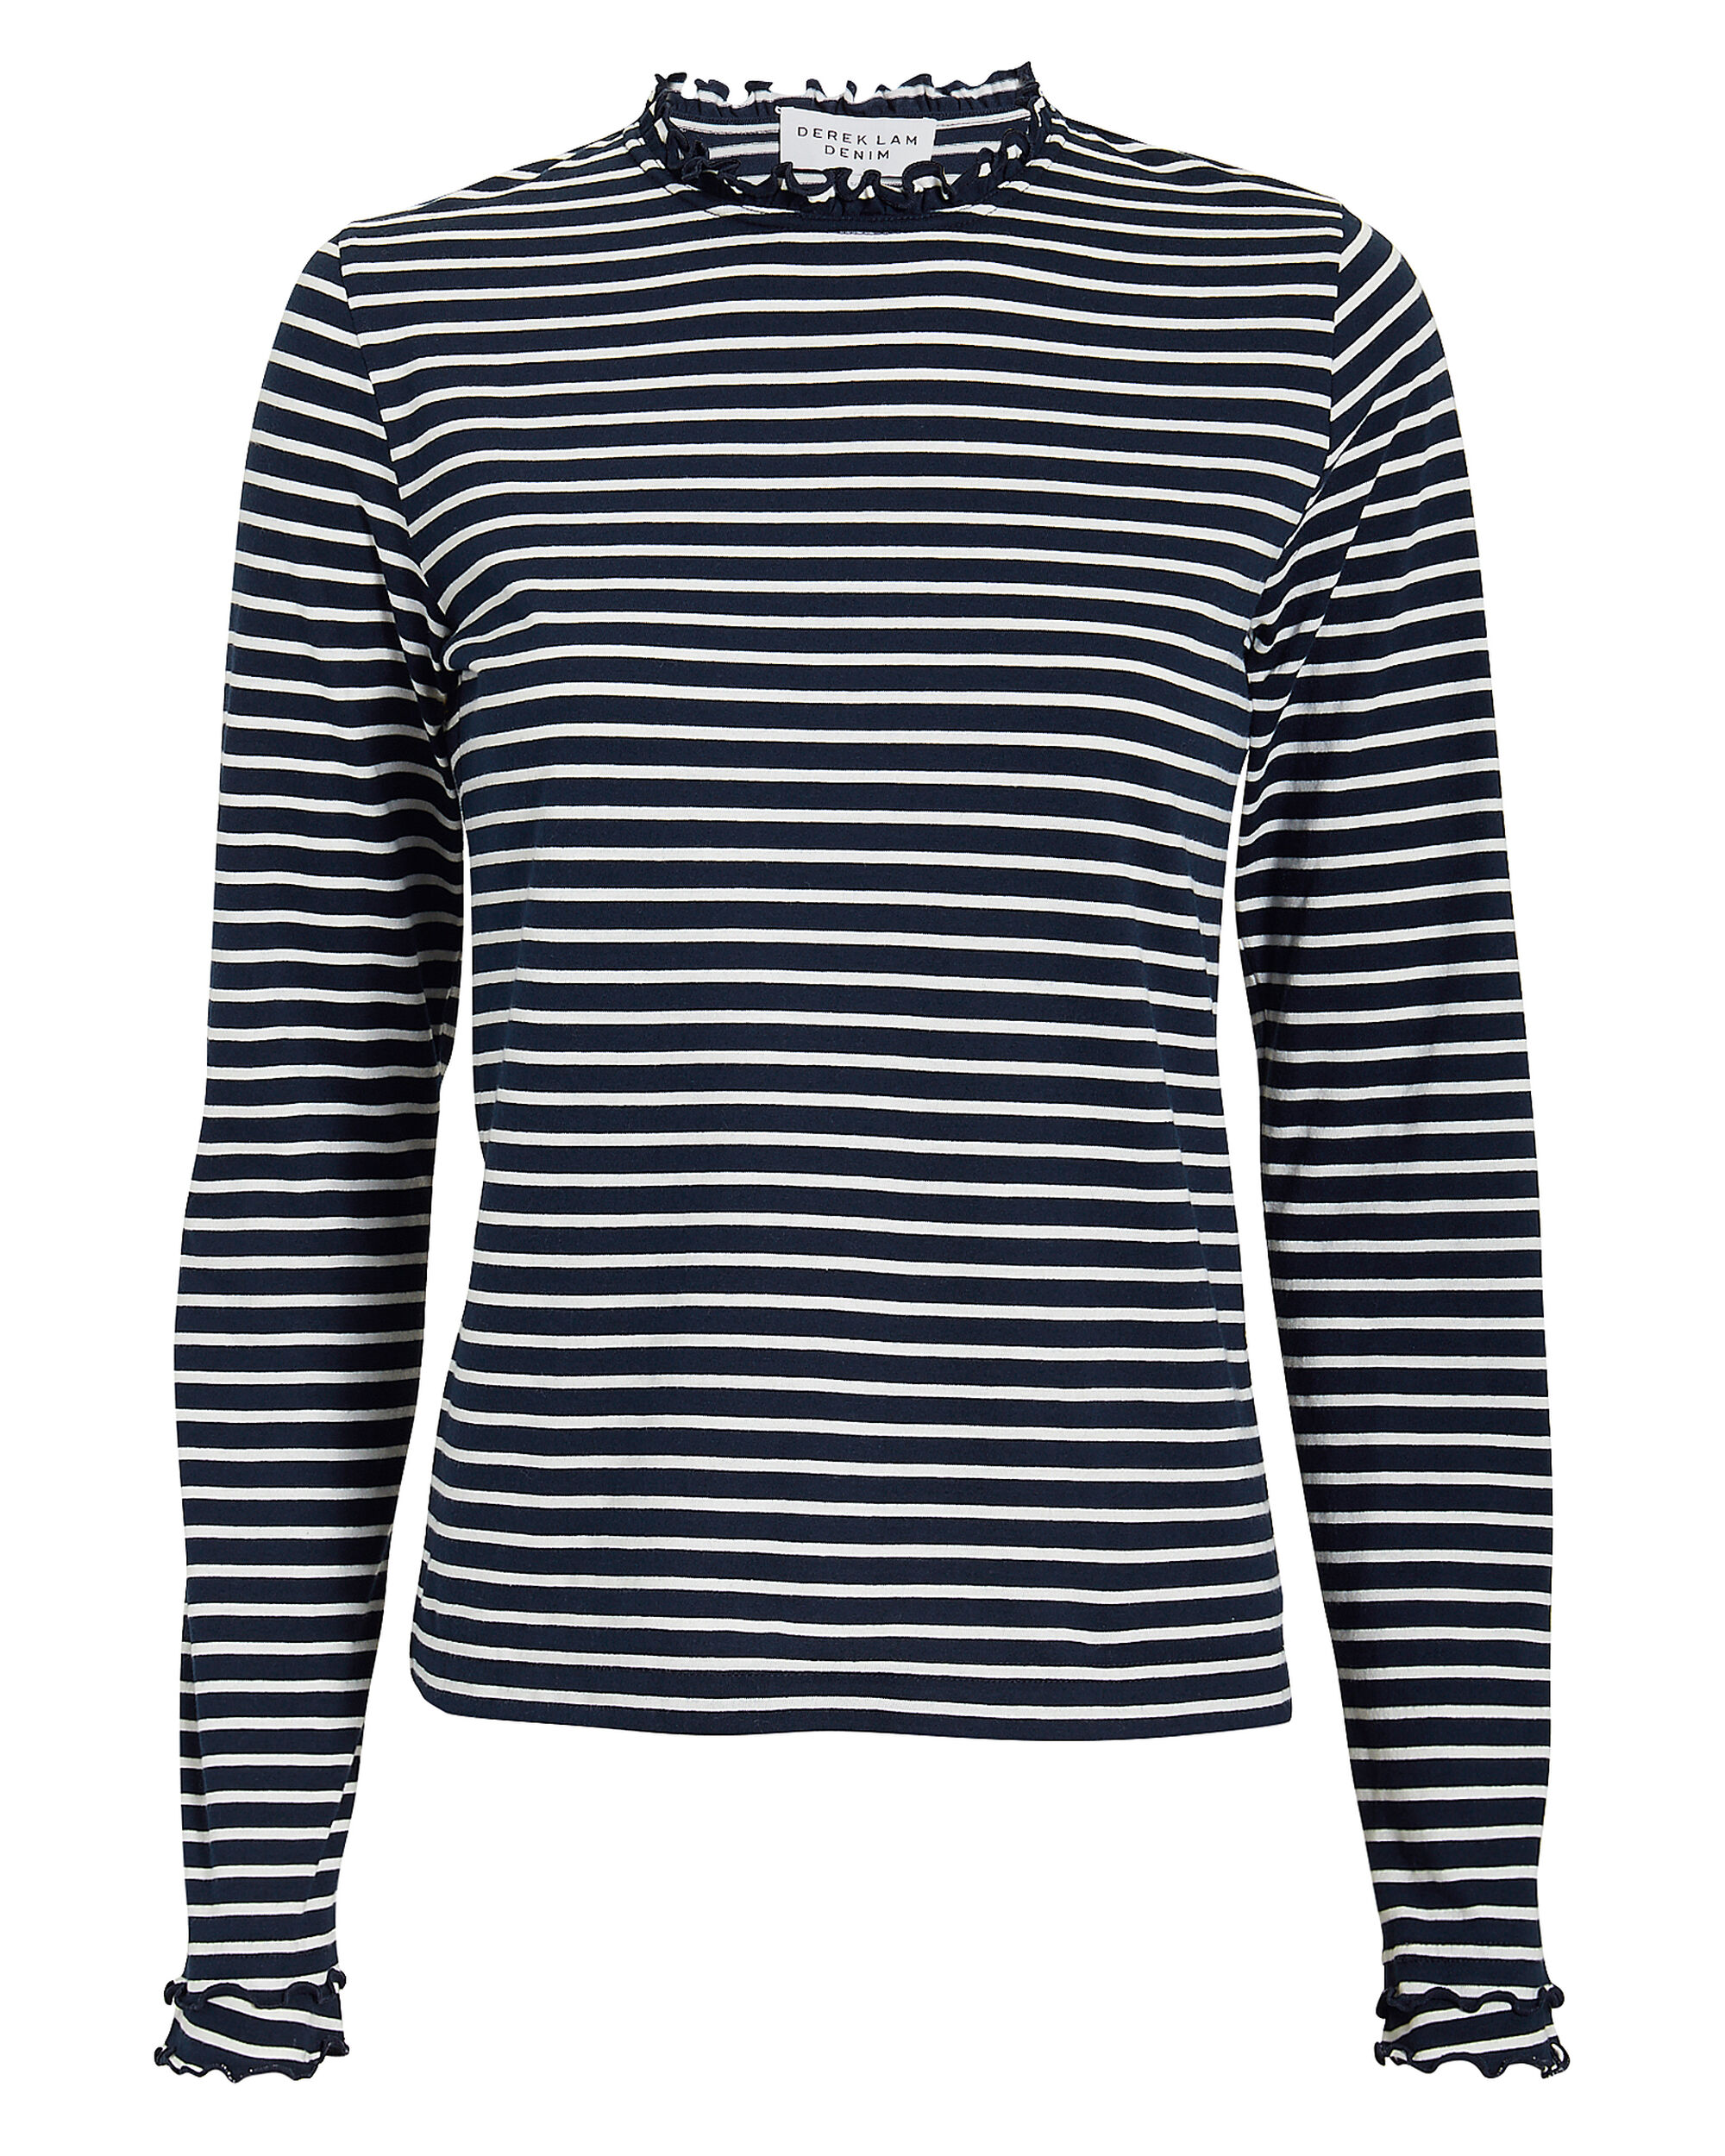 Ruffle Neck Striped Top, NAVY/WHITE, hi-res